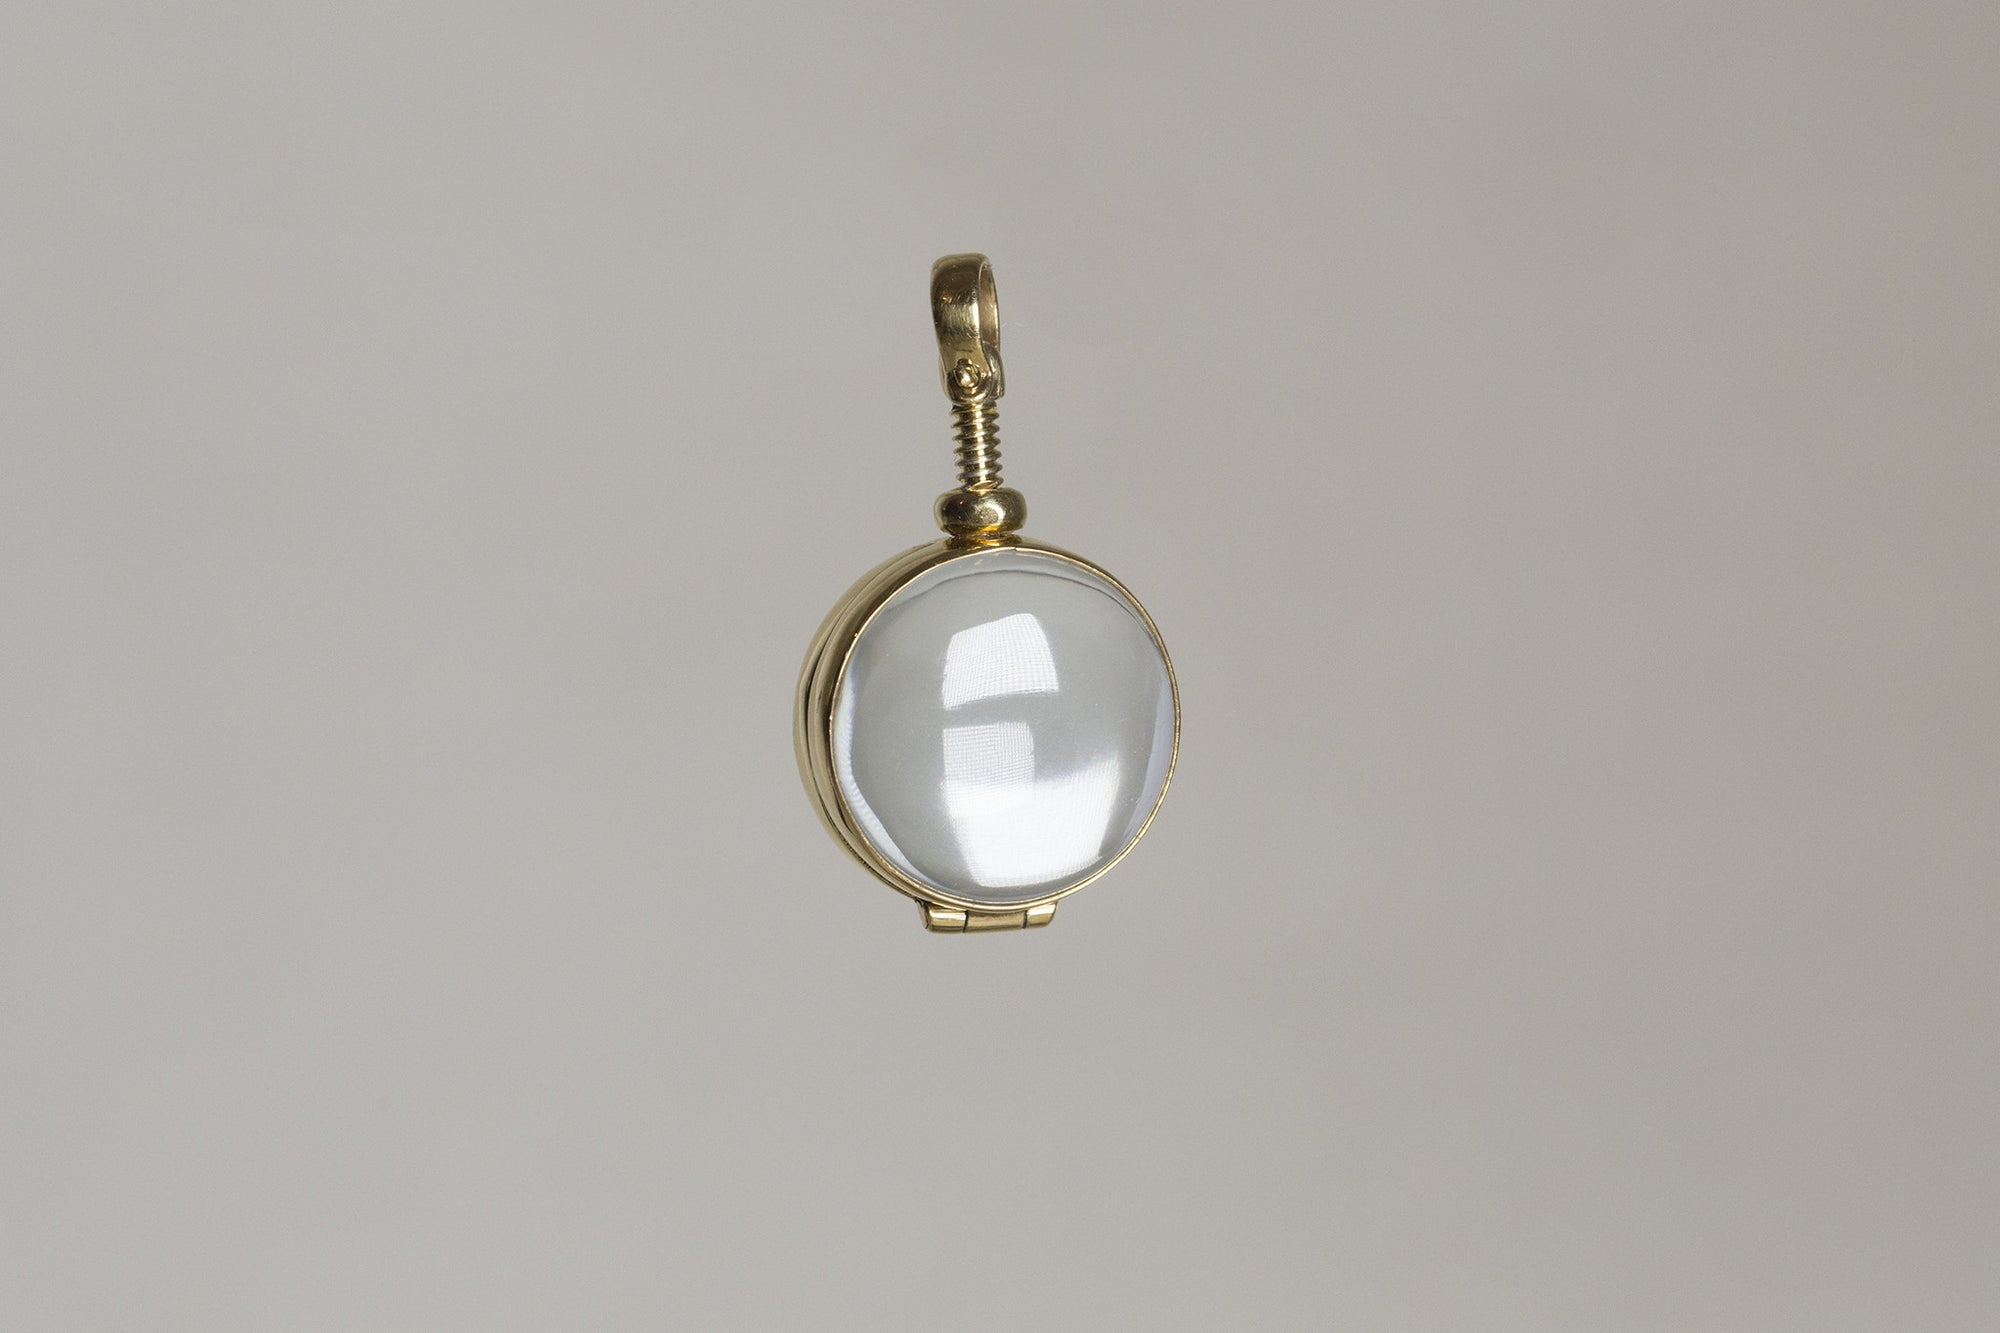 Milina's Round Glass Gold Plated Locket Pendant